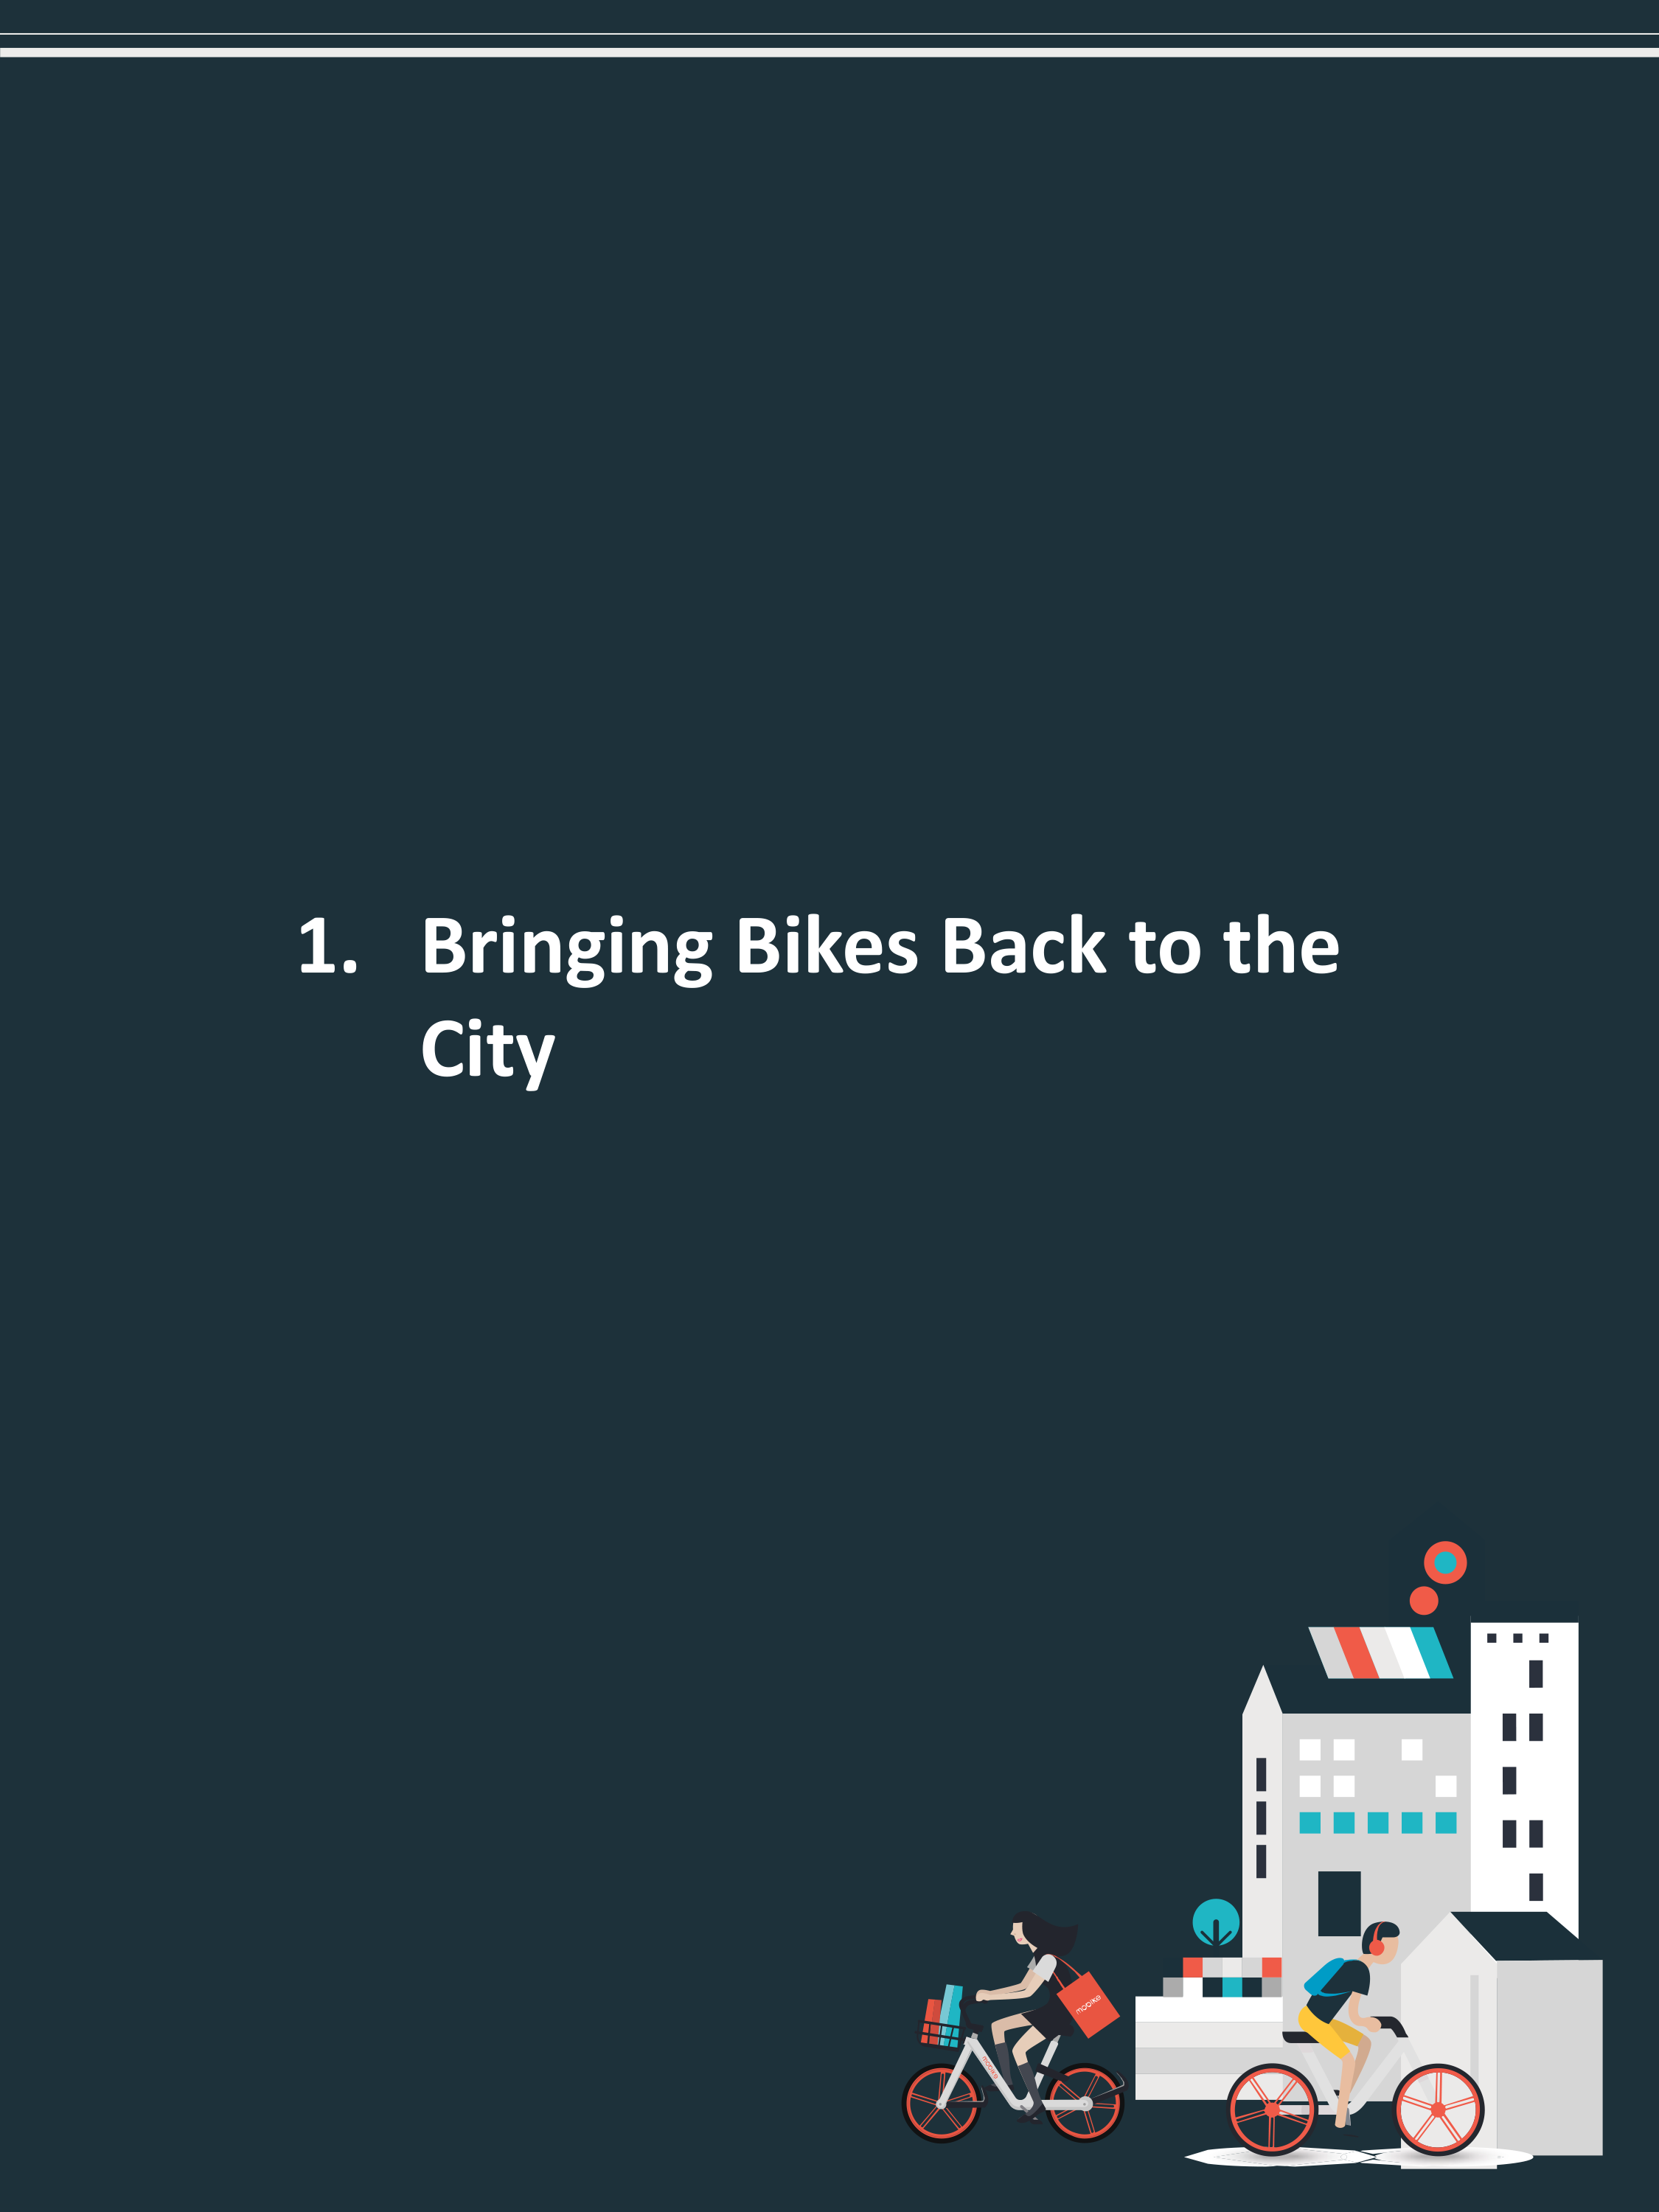 1. Bringing Bikes Back to the City